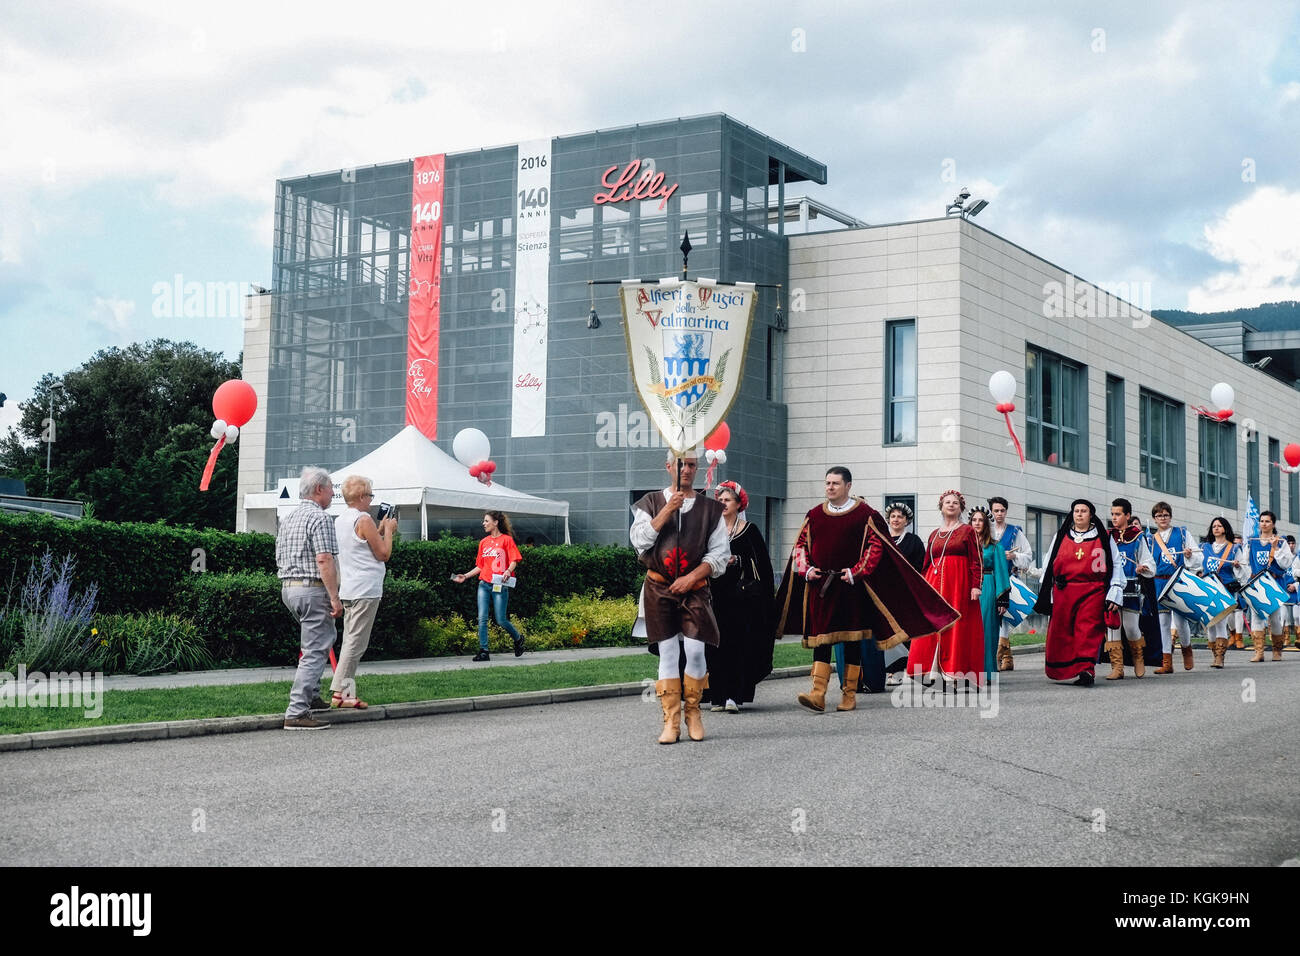 Medieval fellowship live performance inside the Eli Lilly